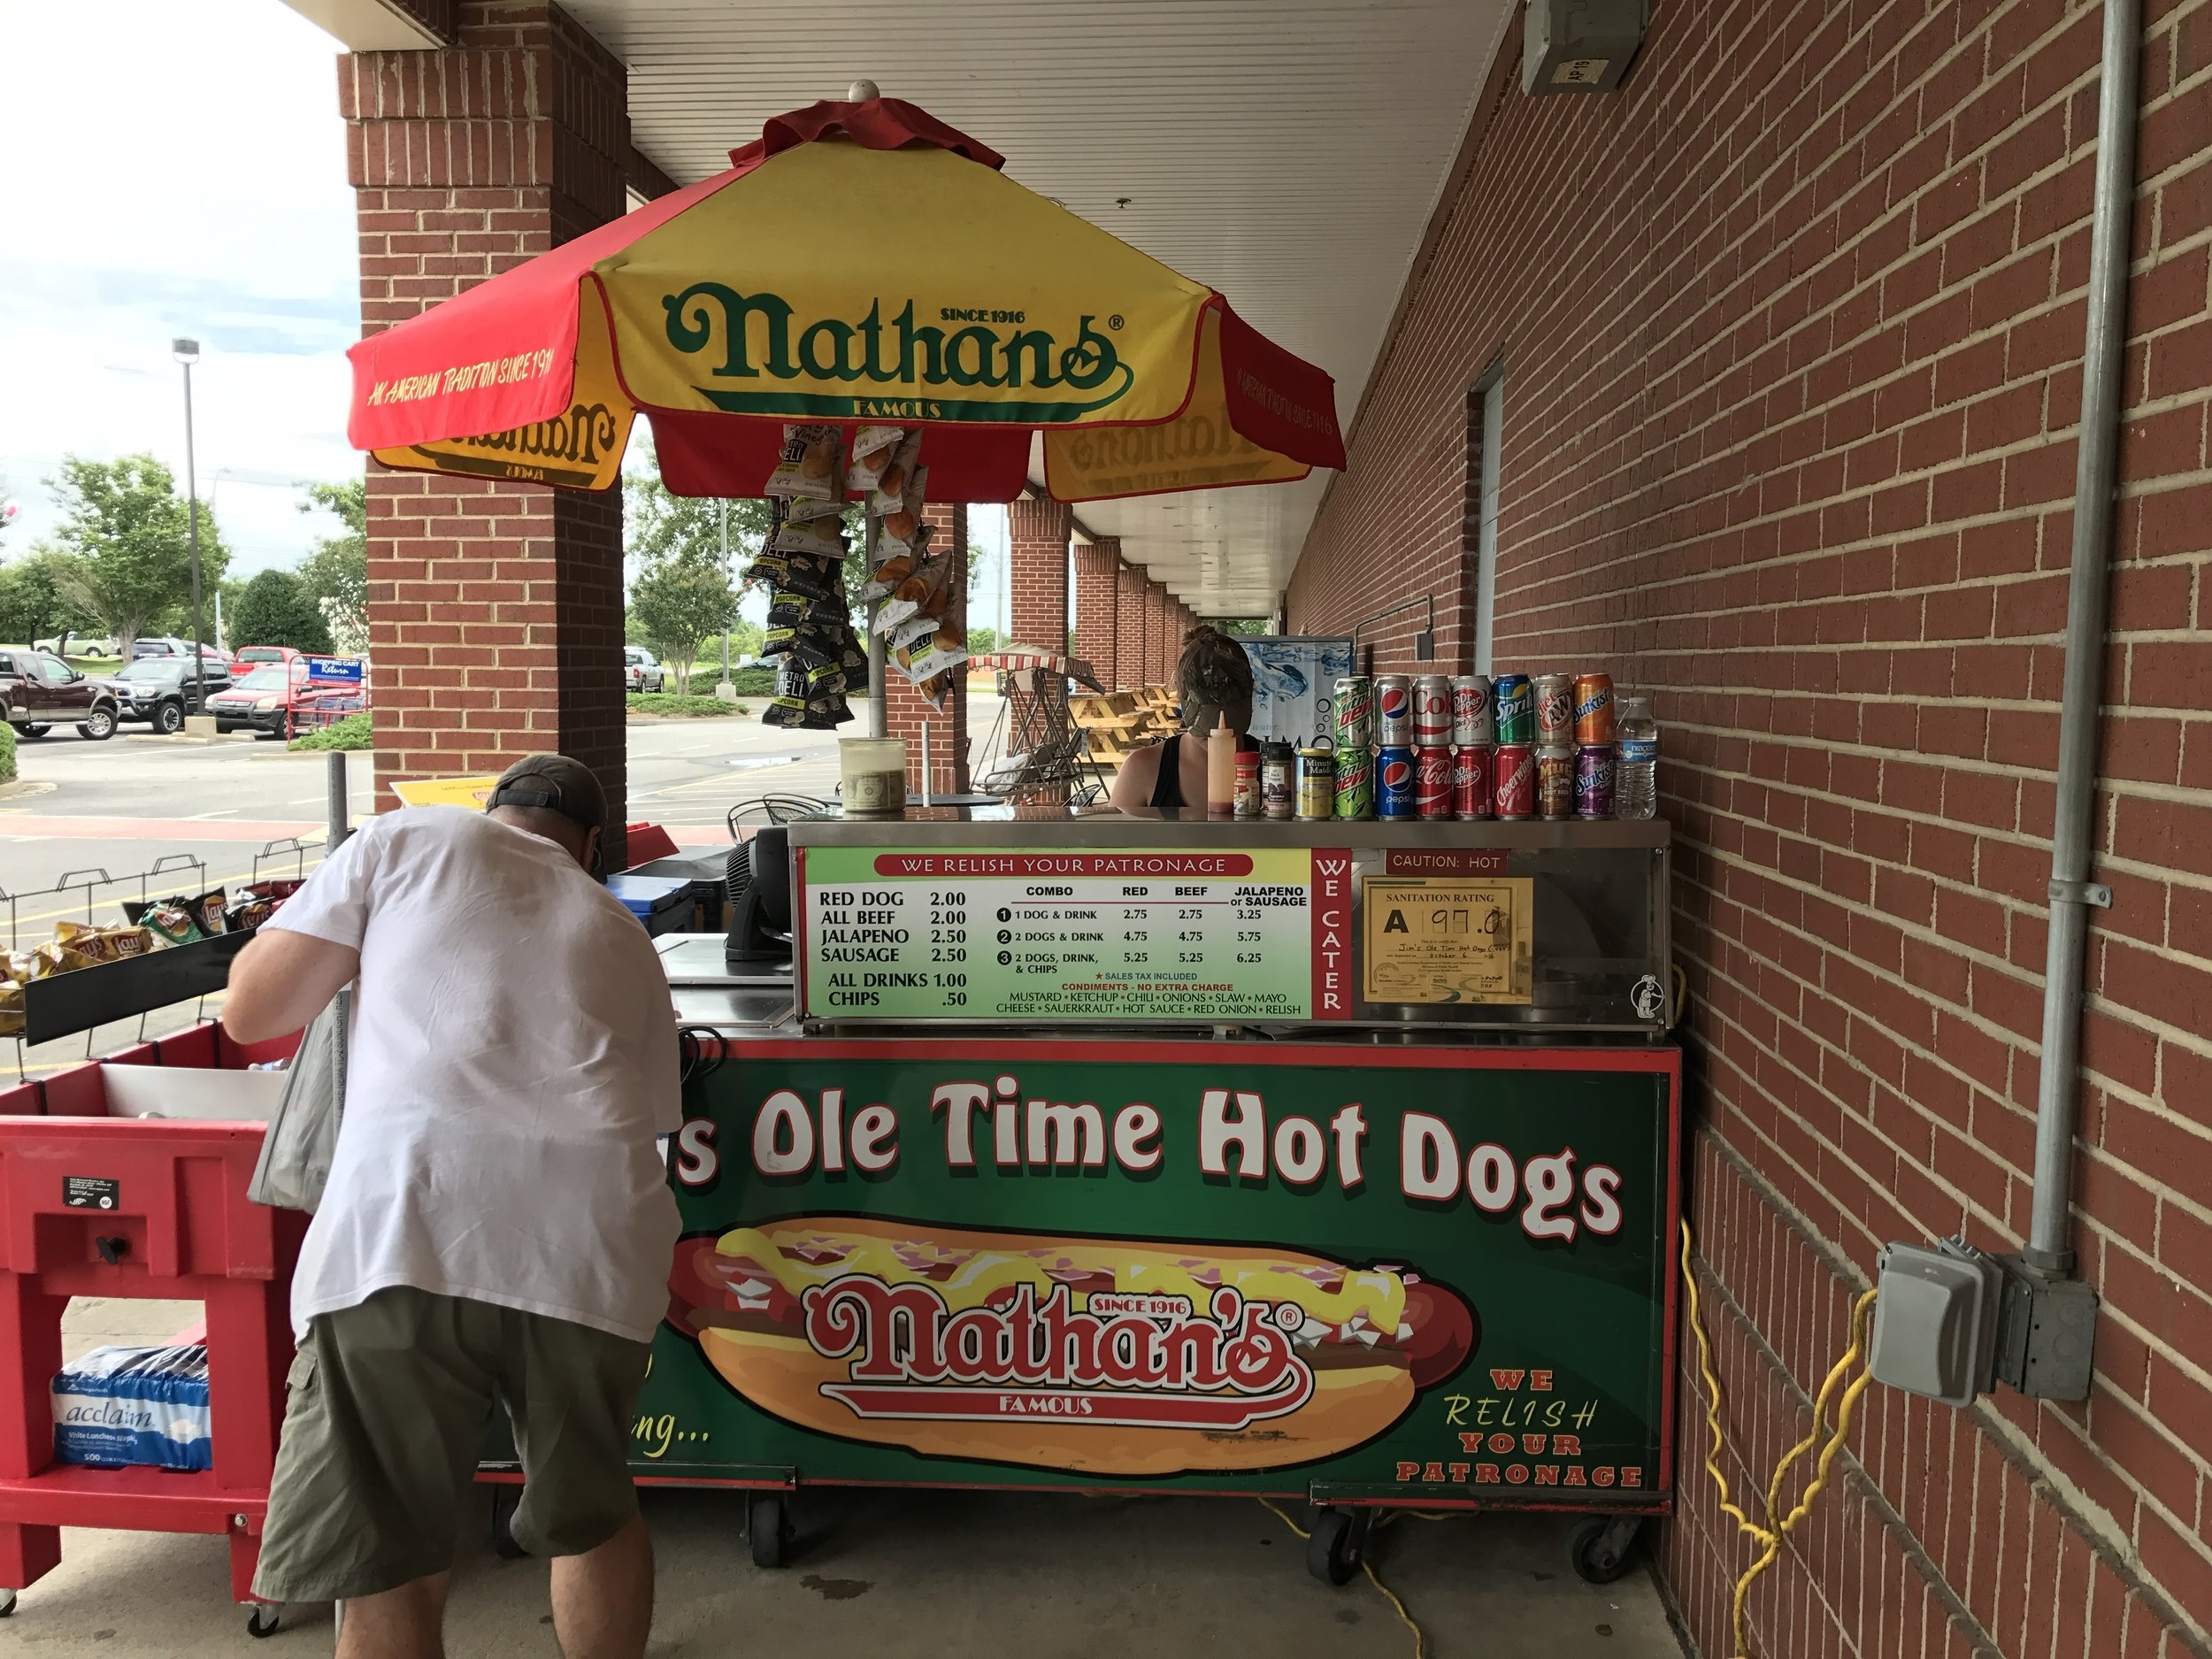 Jim's Ole Time Hot Dogs - A quaint stand that resides outside of Lowe's Home Improvement